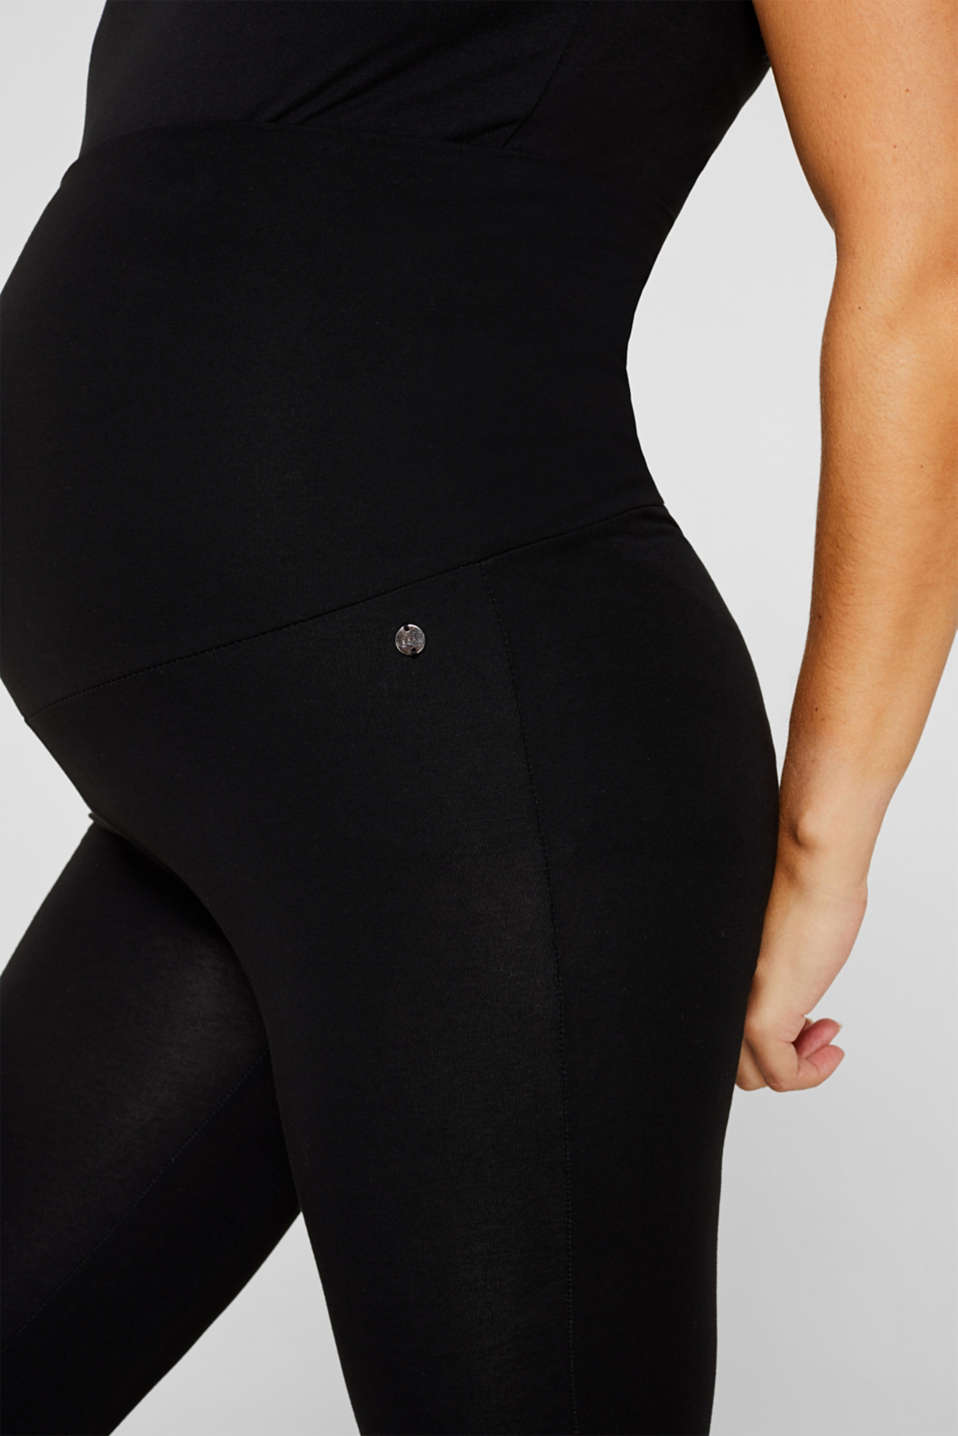 Leggings with an over-bump waistband, LCBLACK, detail image number 2